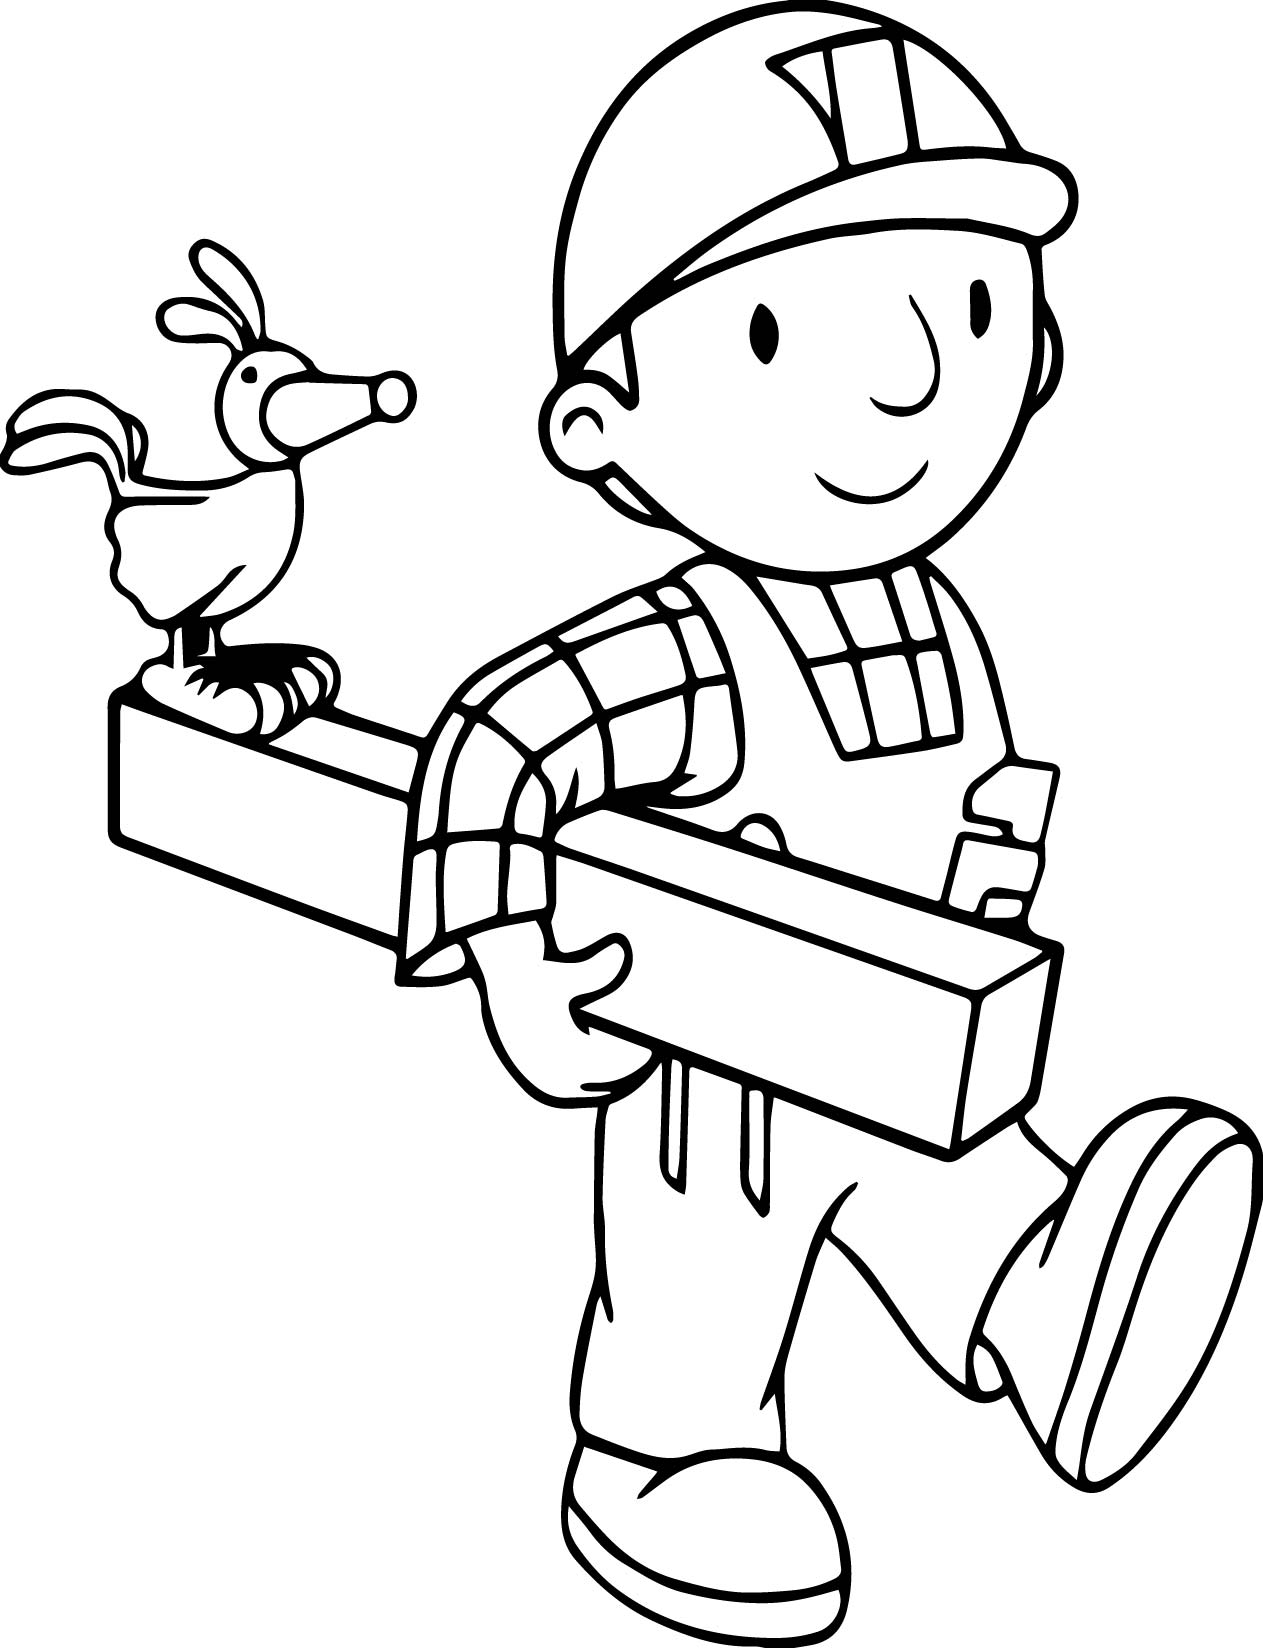 Bob The Builder And Bird Coloring Page